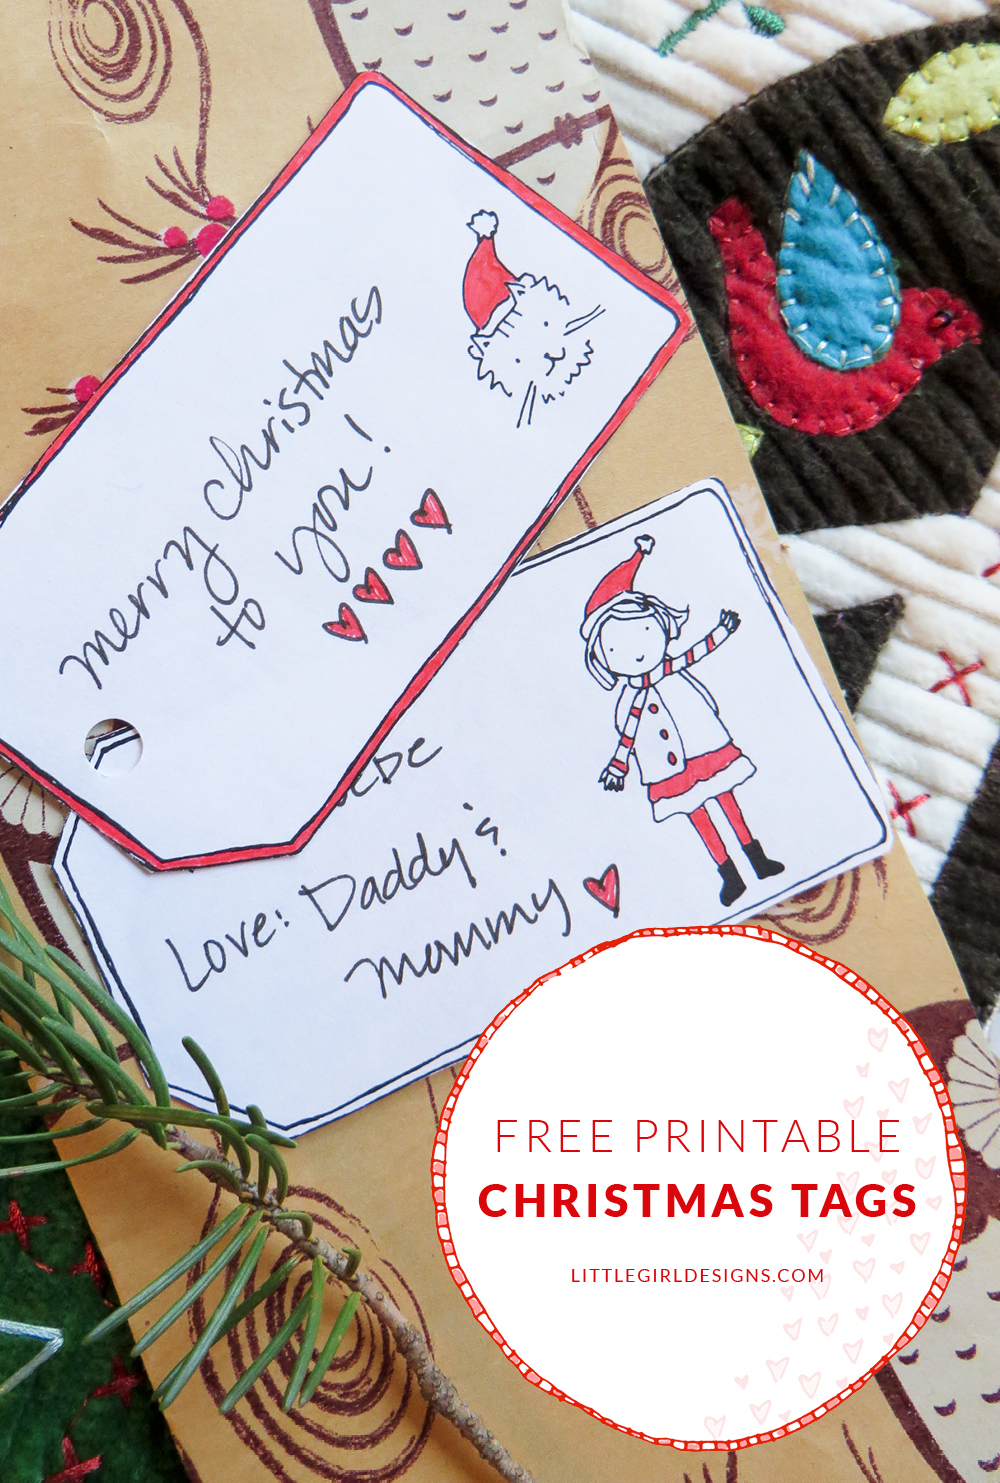 Free Printable Gift Tags - a set of sweet printable gift tags for you to download and enjoy @ littlegirldesigns.com